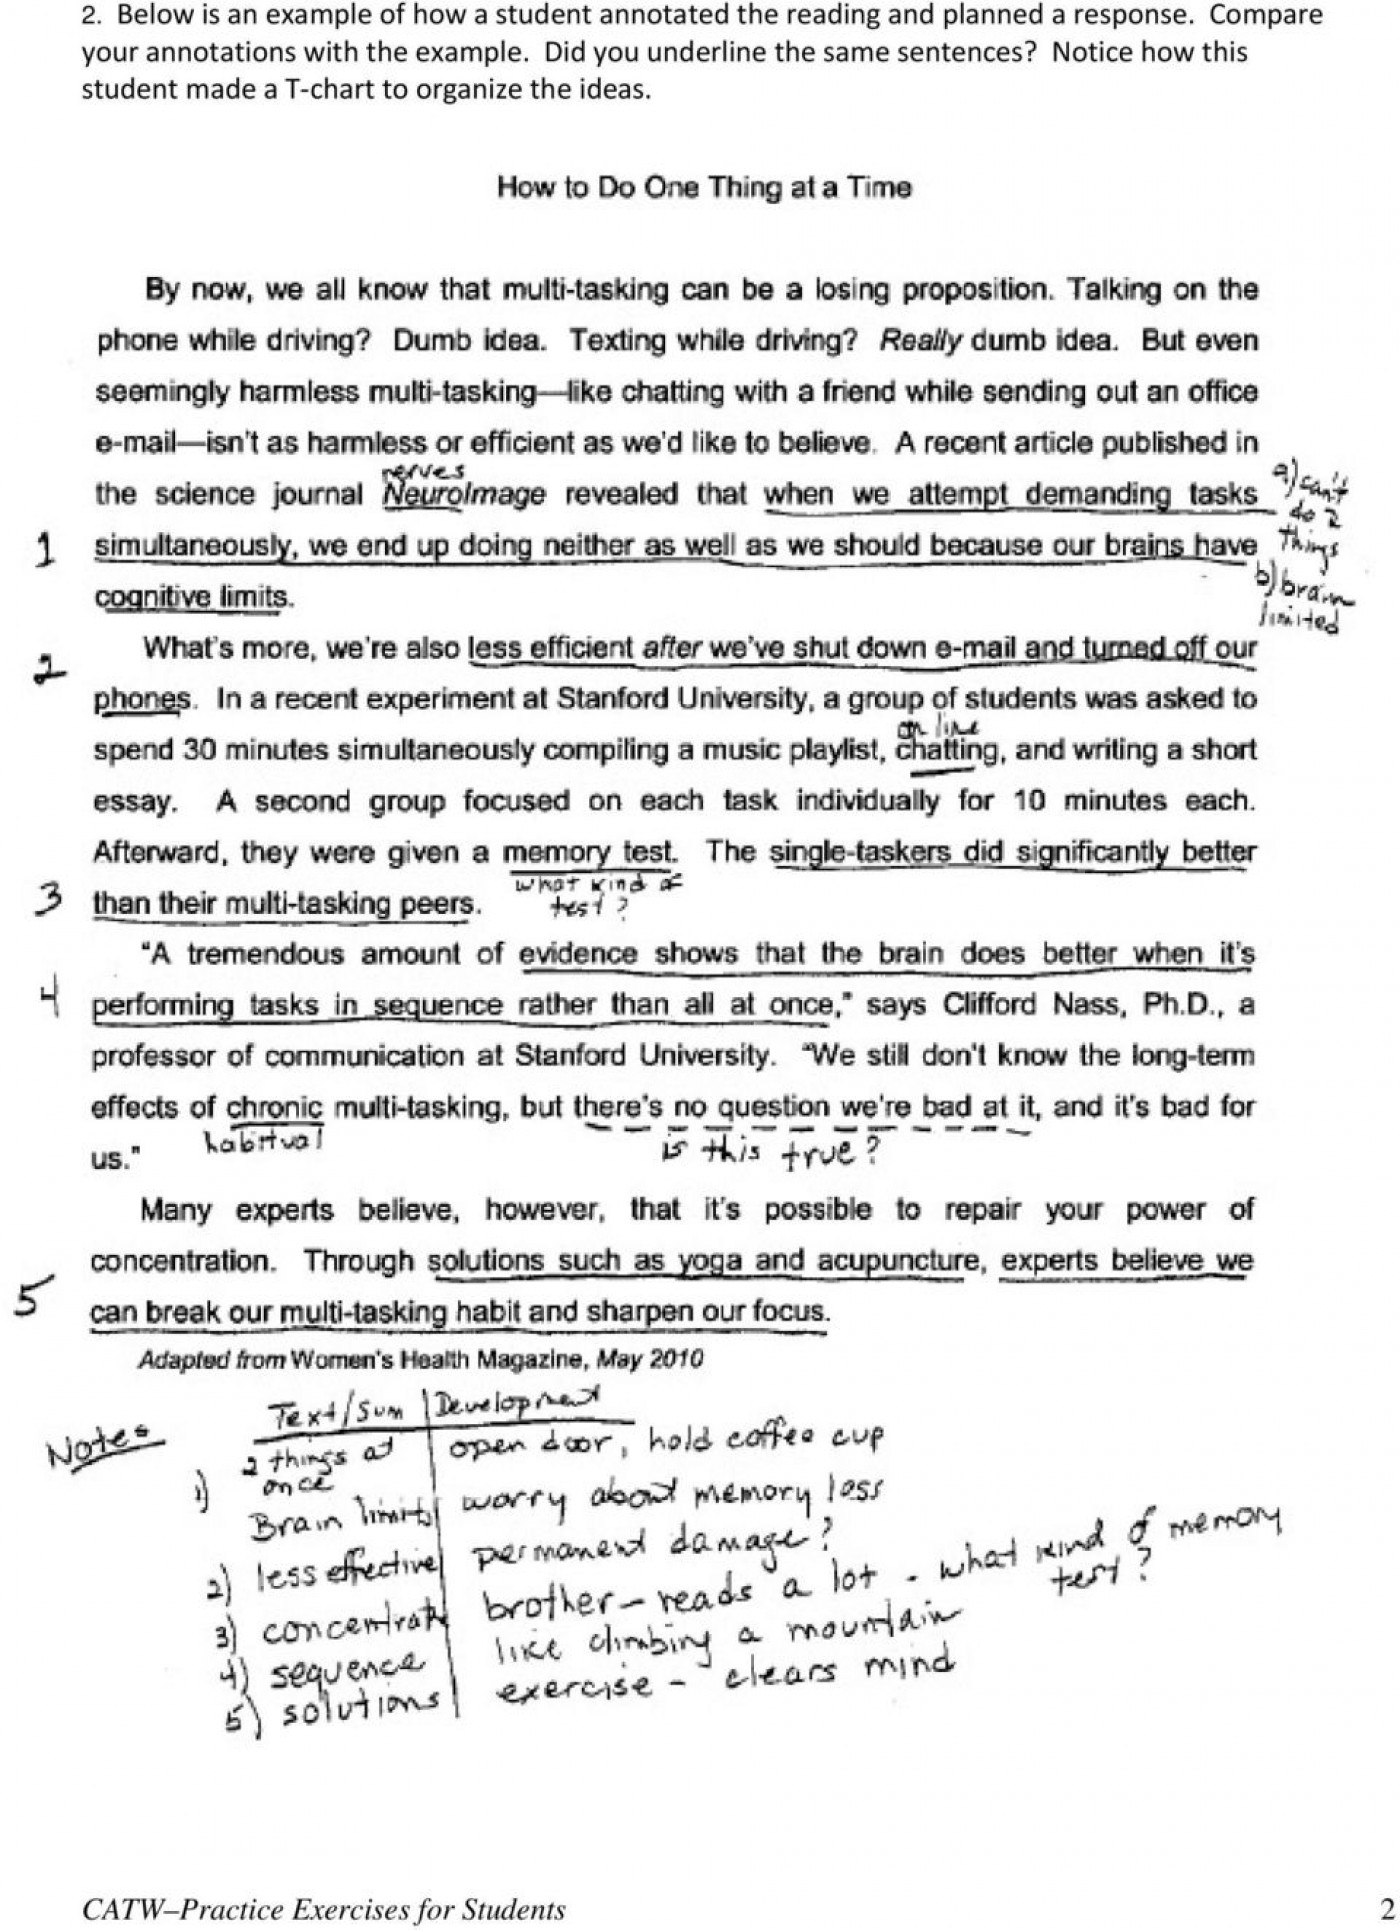 005 Medical Research Paper Topics Page 3 Stupendous Best Ethics For High School Students 1400